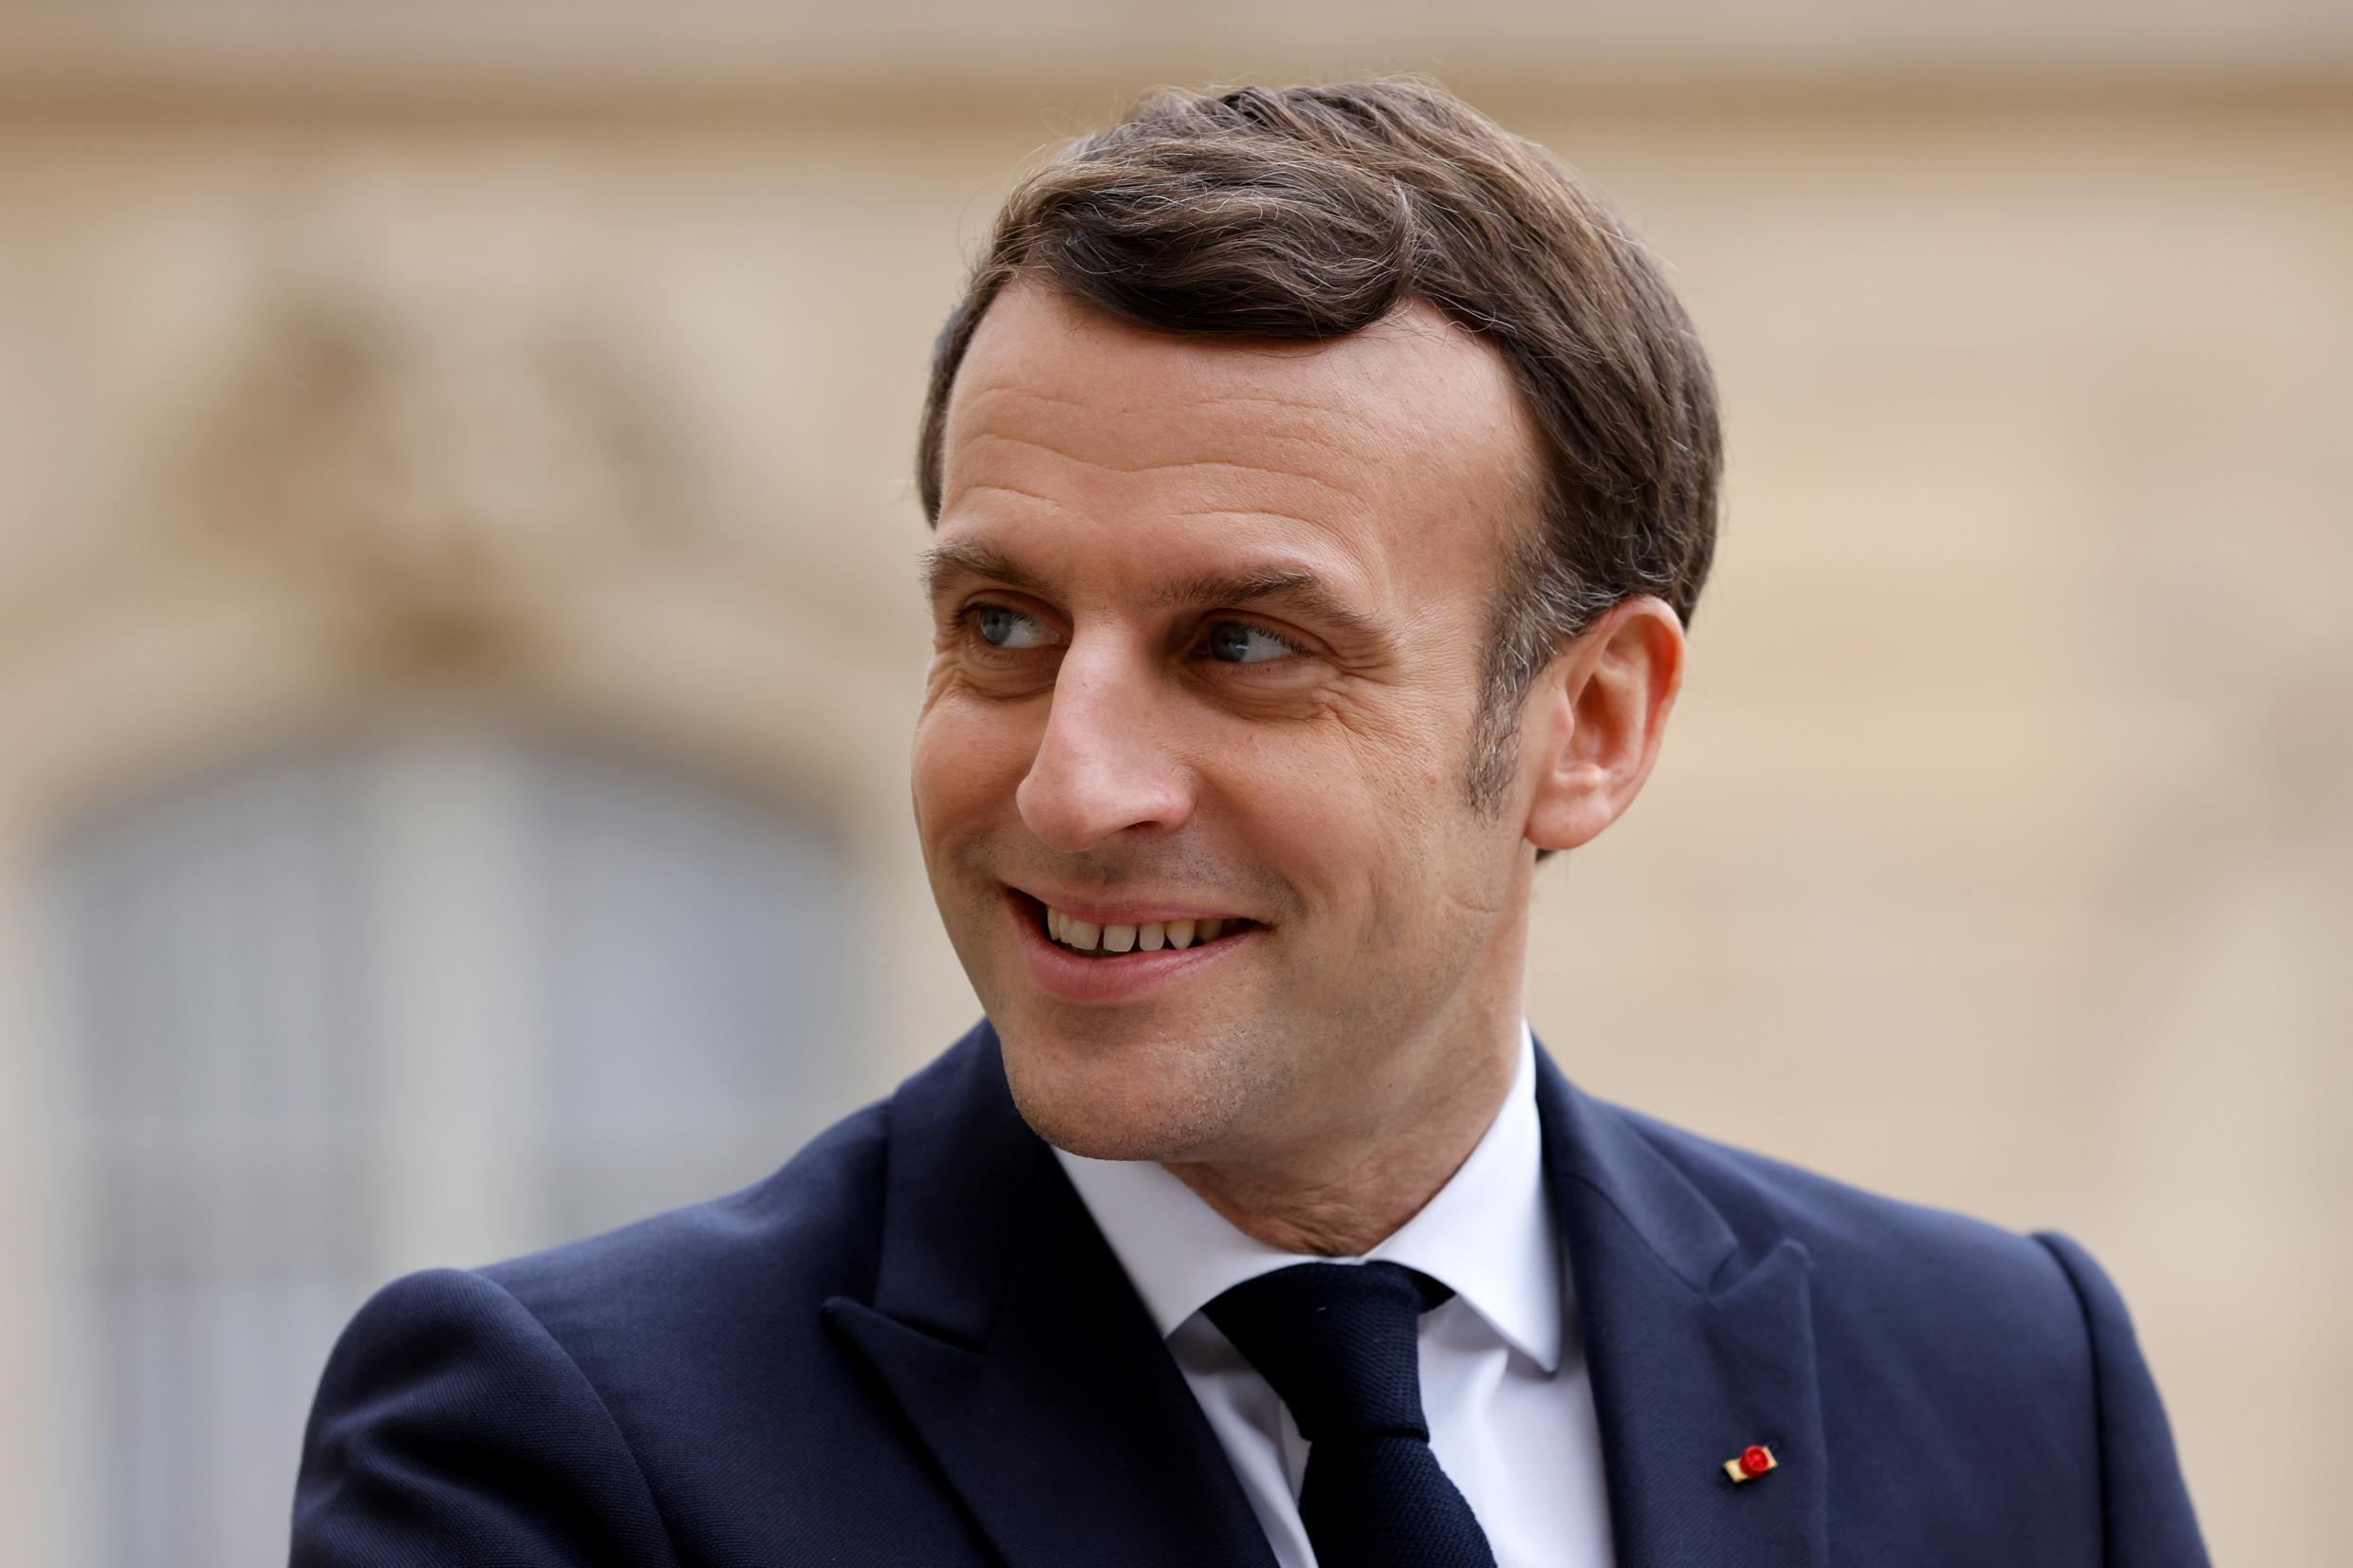 French President Emmanuel Macron supports new negotiations that would also place limits on Iran's ballistic missile programme